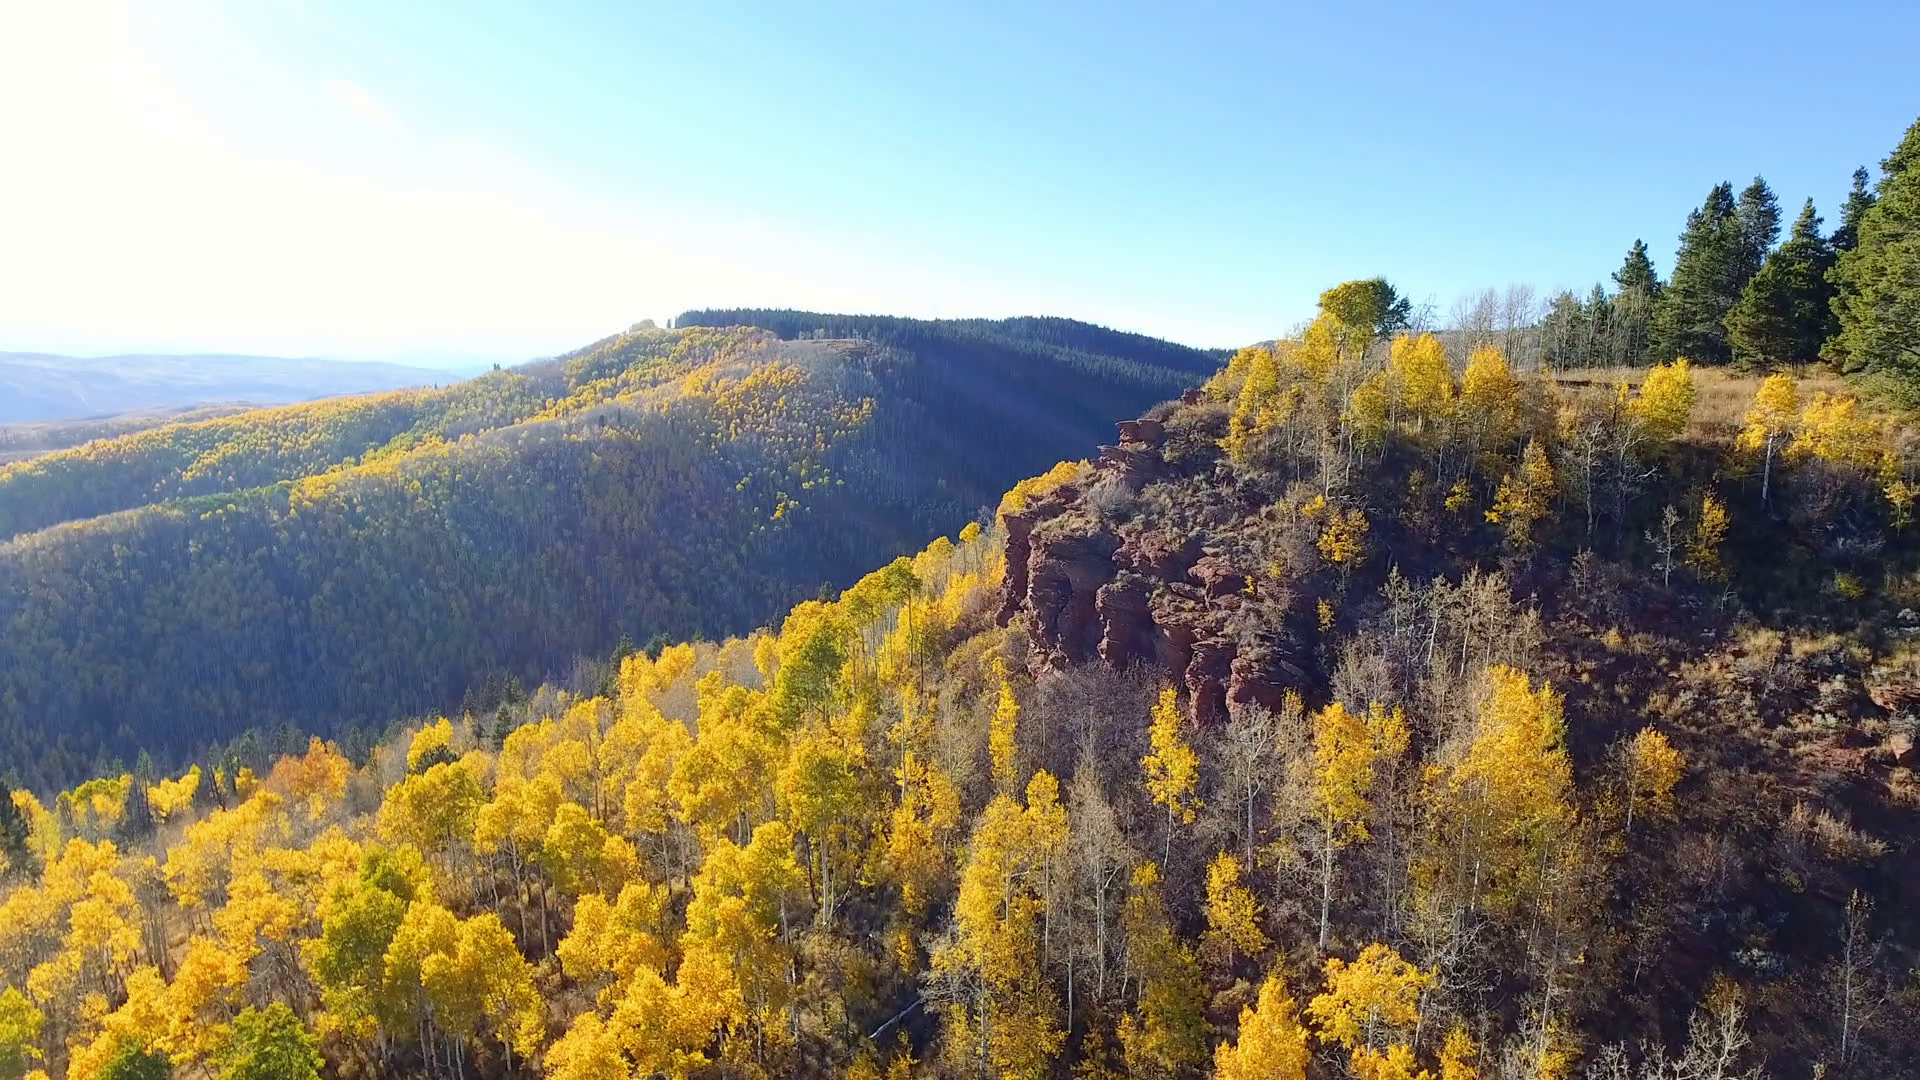 Flying Past A Cliff Surroundedfall Foliage In Autumn